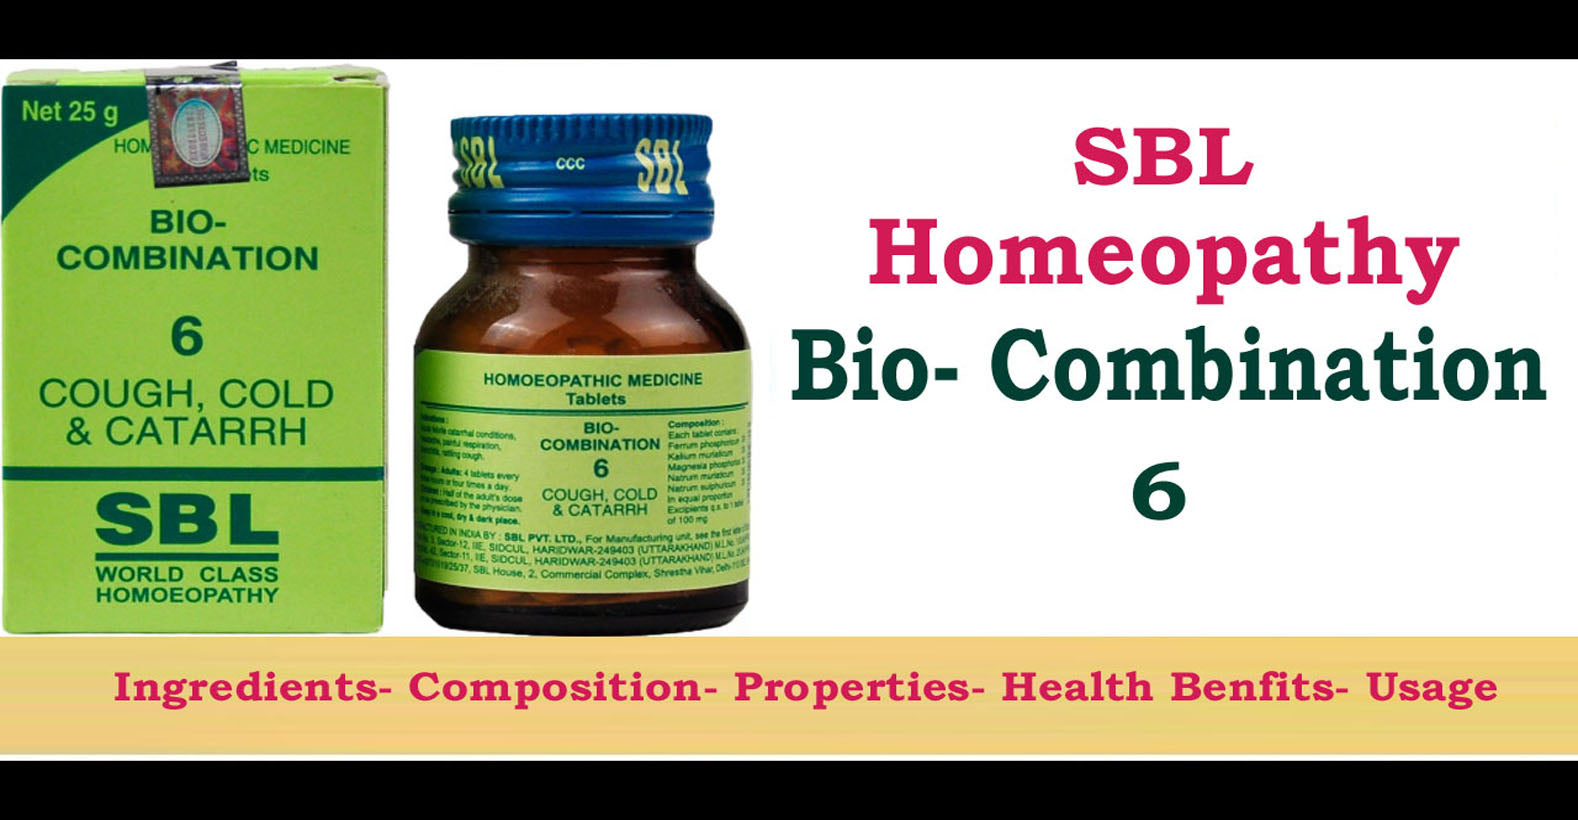 SBL Homeopathy Bio-Combination 6 Tablet -  Ingredients, Composition, Properties, Health Benefits, Usage